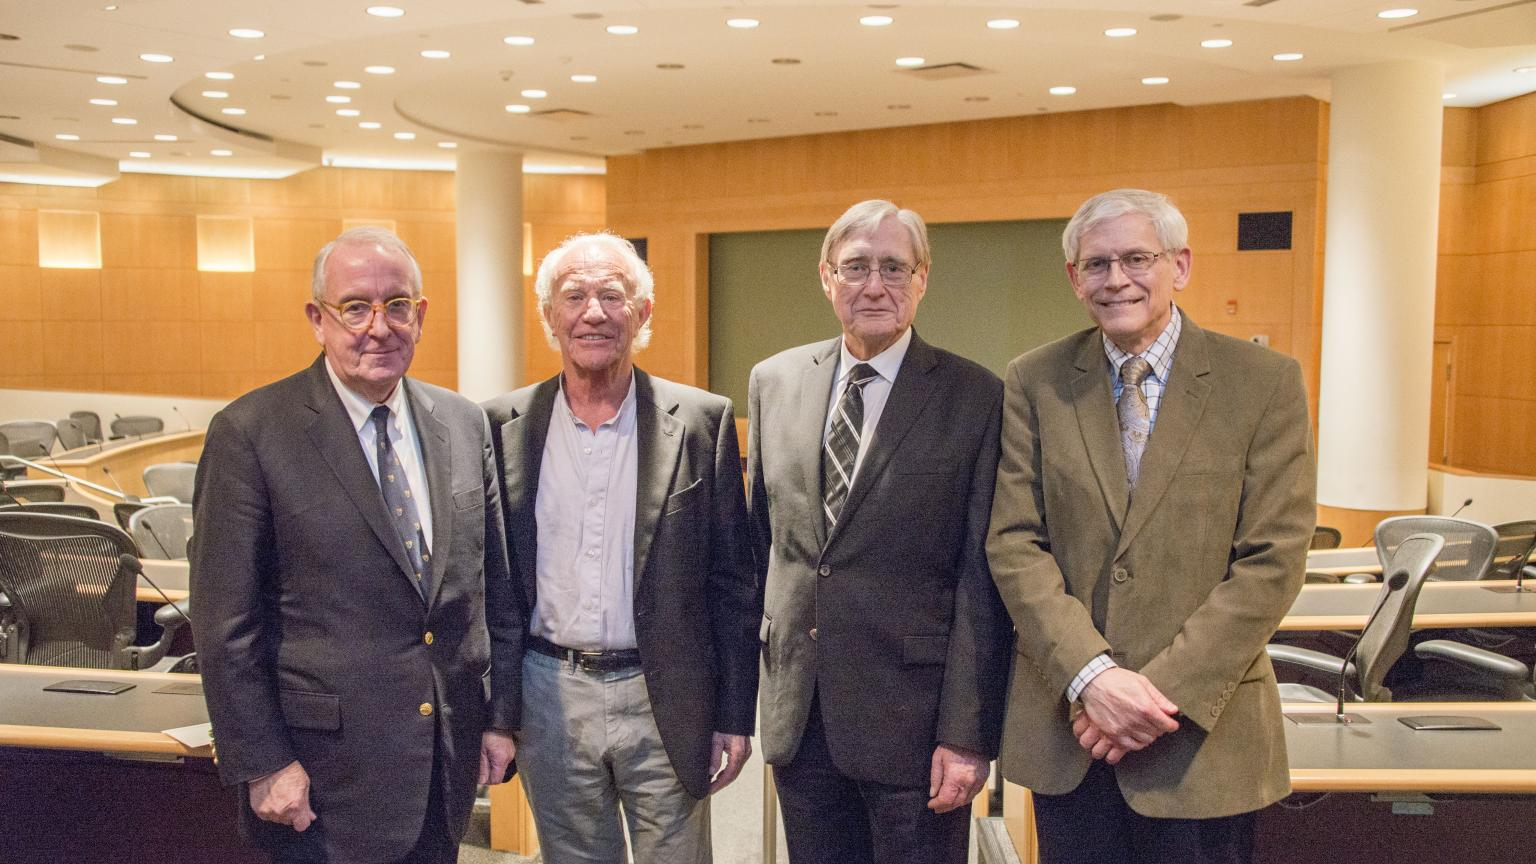 Vascular surgery emeritus faculty and Dr. Wakefield at Berguer symposium